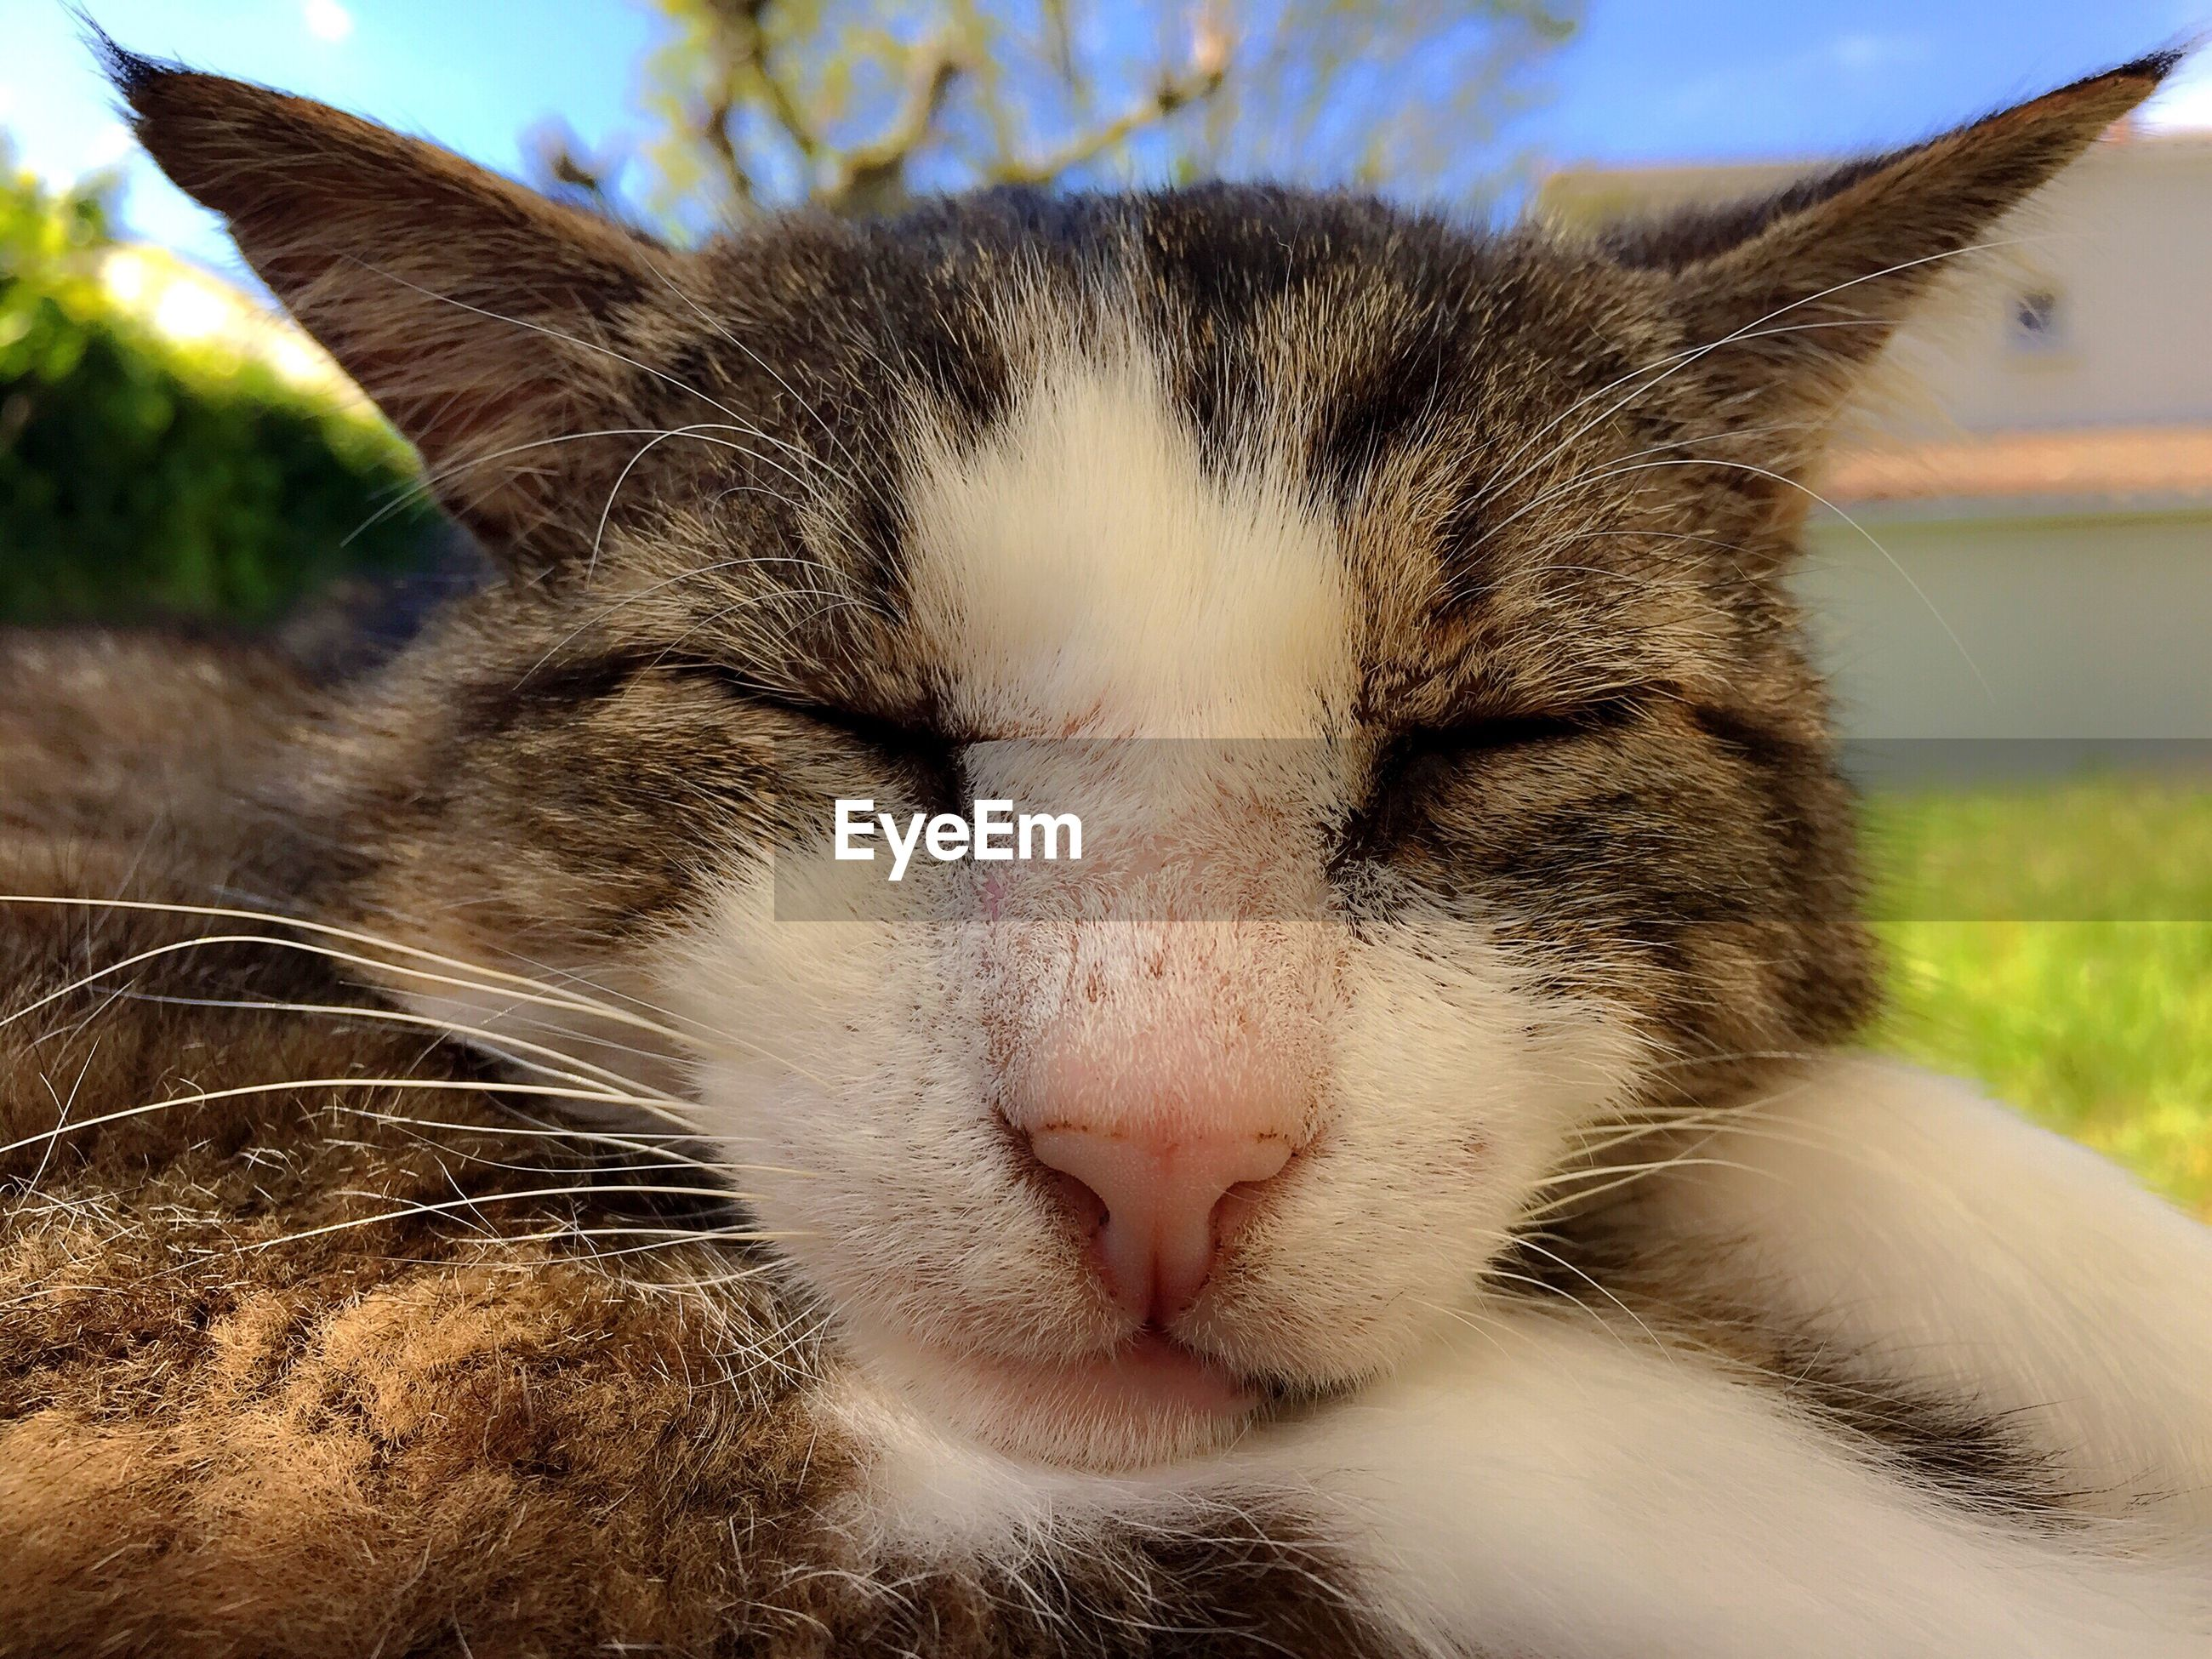 Close-up of cat with eyes closed